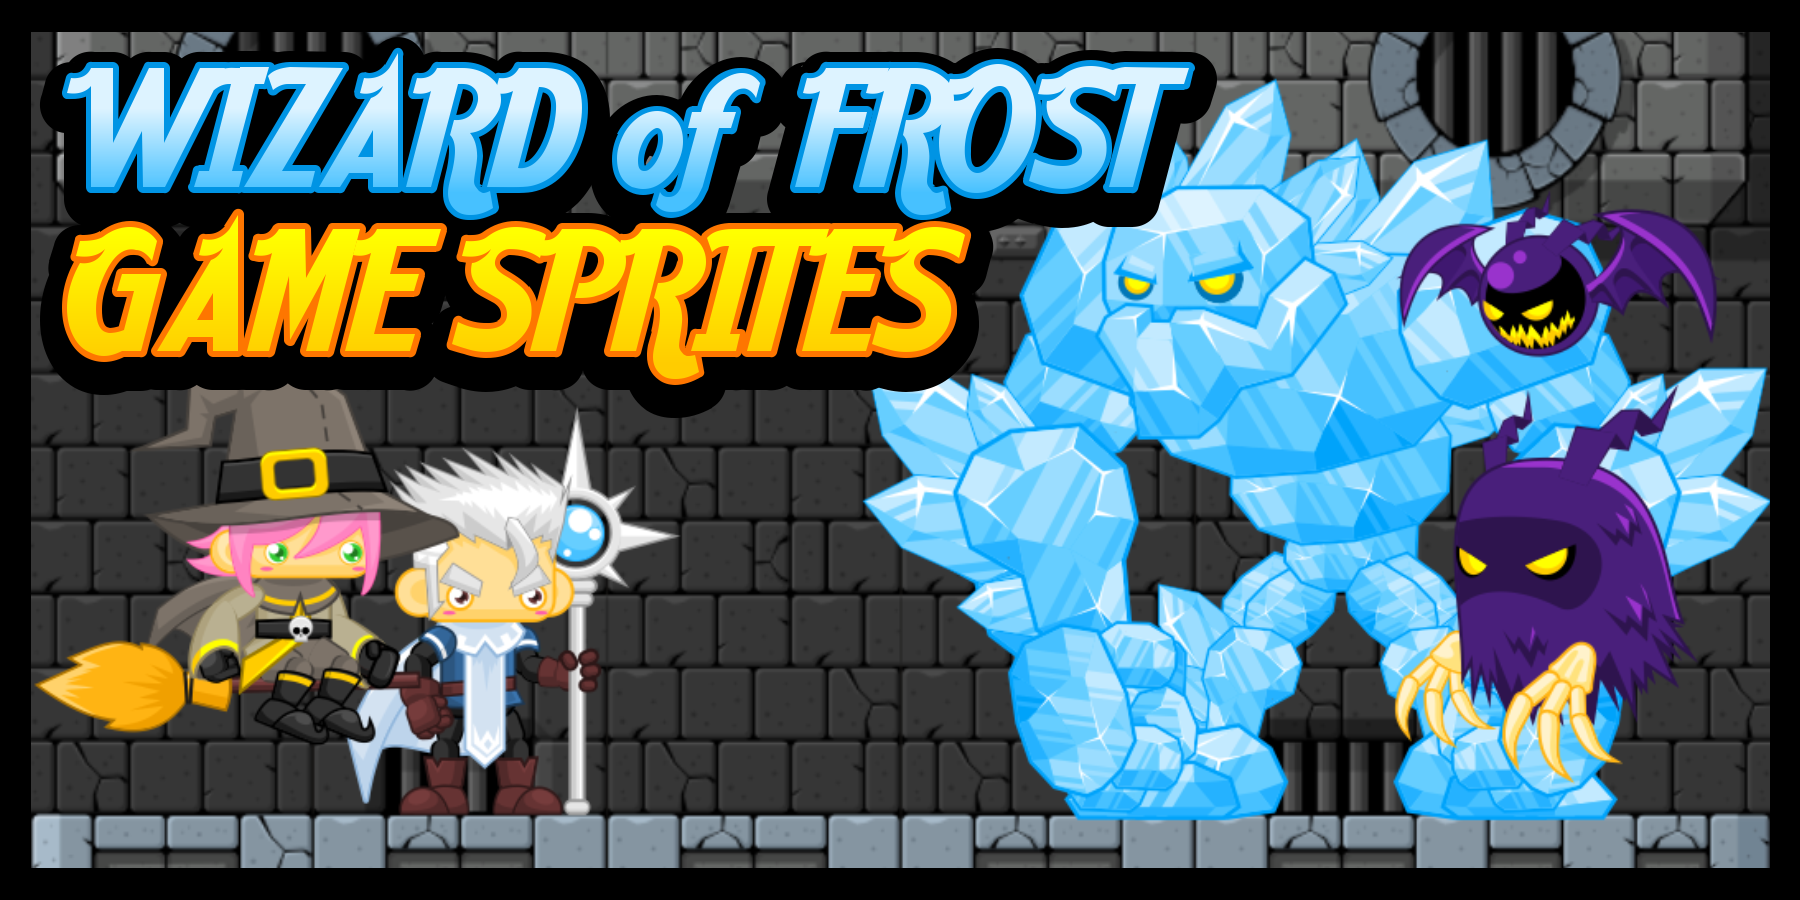 Wizard of Frost - Game Sprites